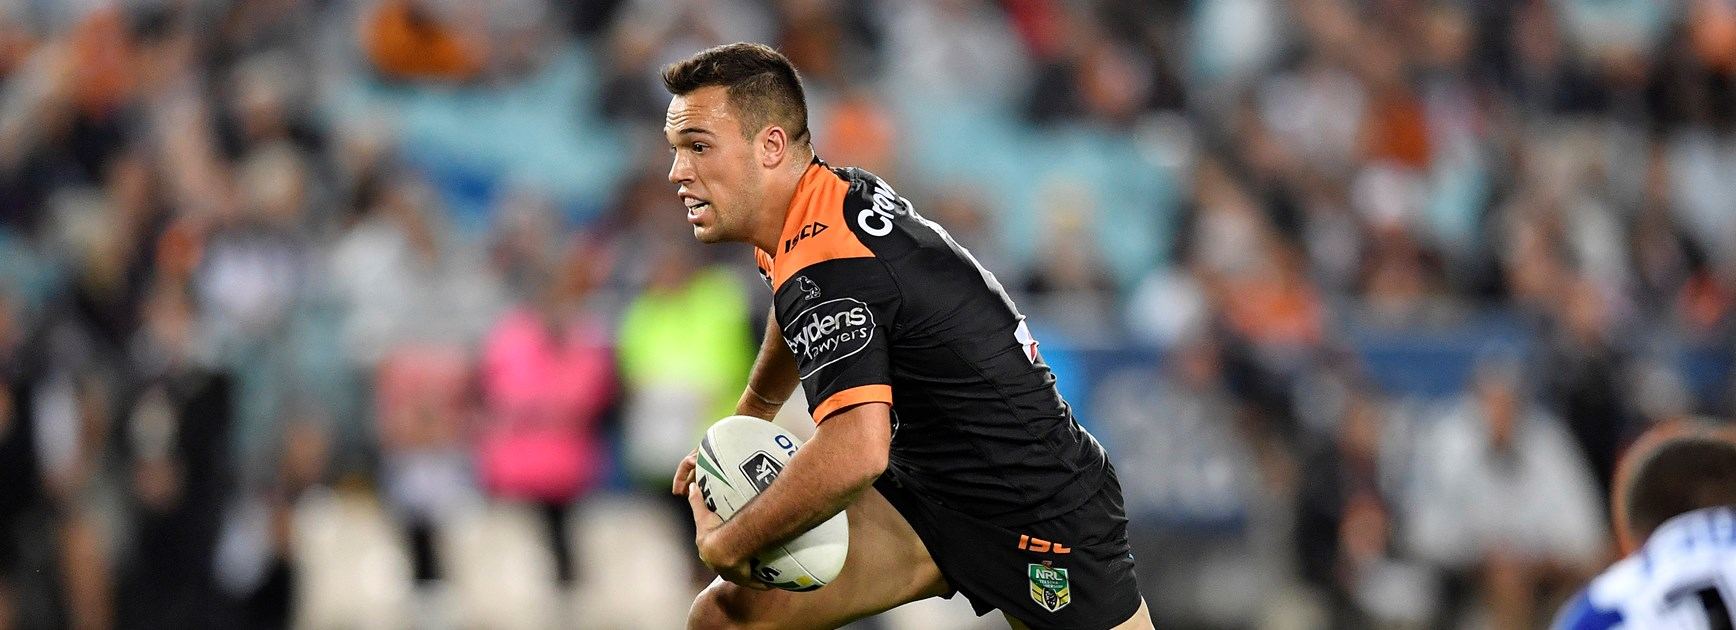 Luke Brooks running Wests Tigers to new heights in 2018